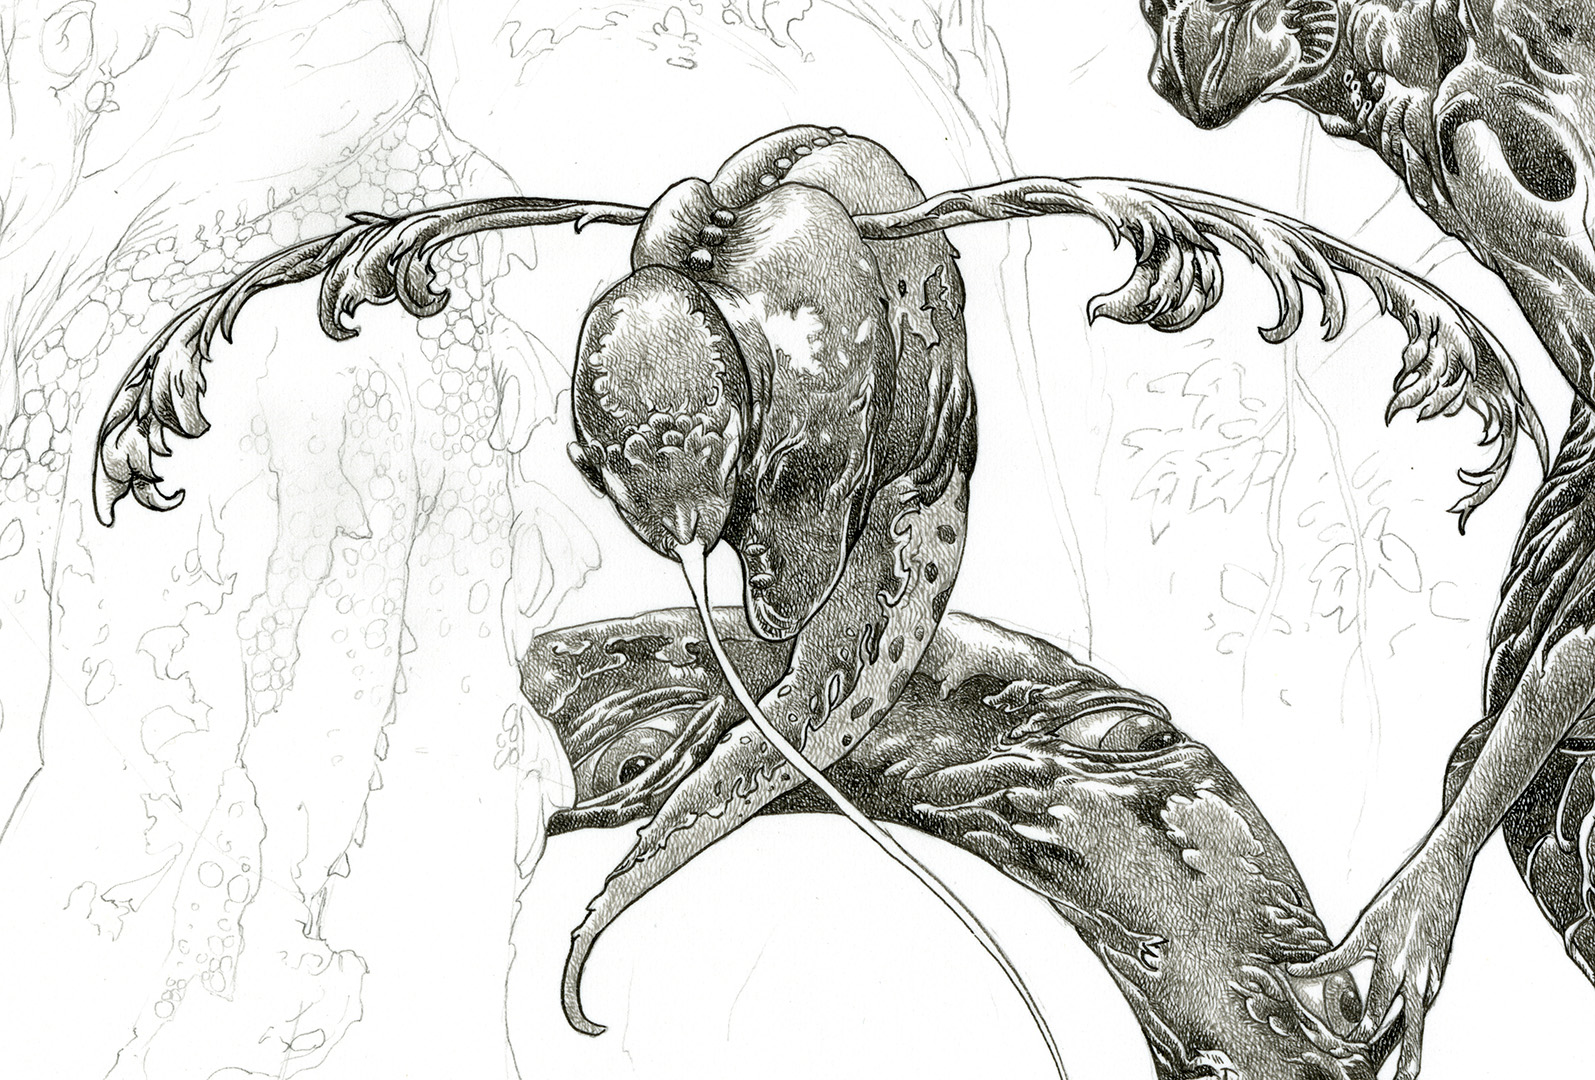 Dawn_Botanist_wip2_detail